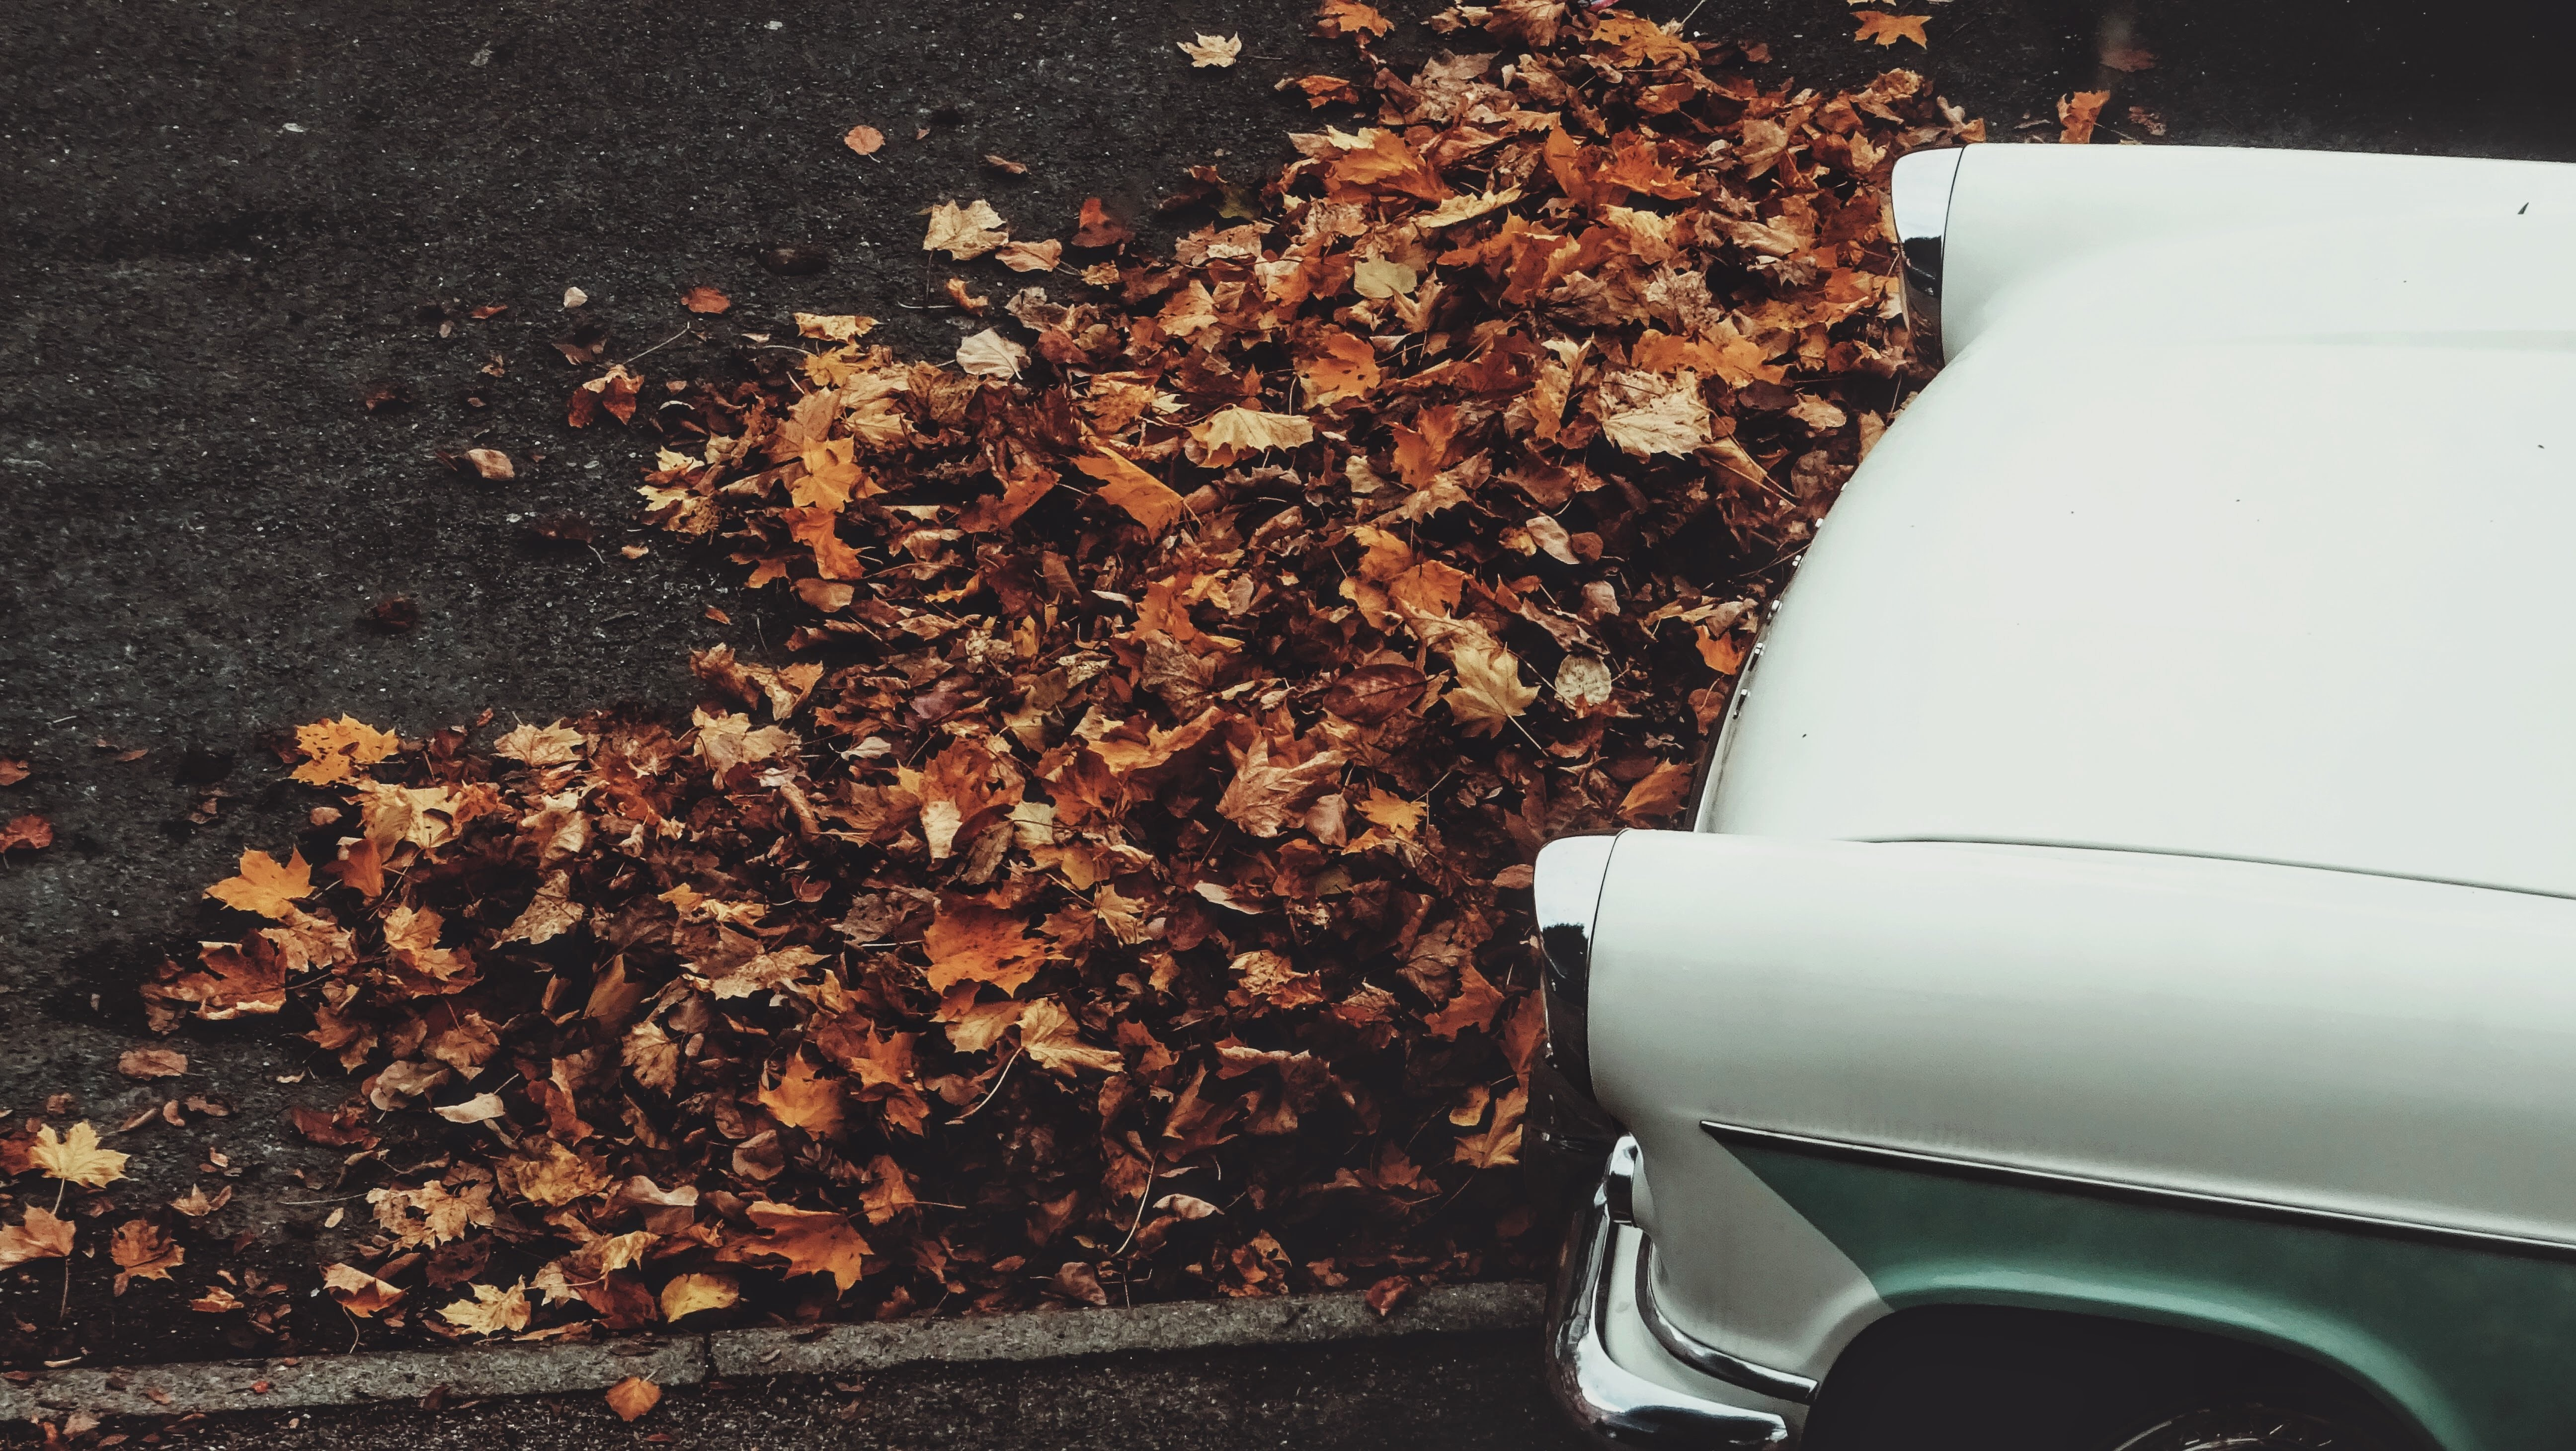 white car and pile of dried leaves